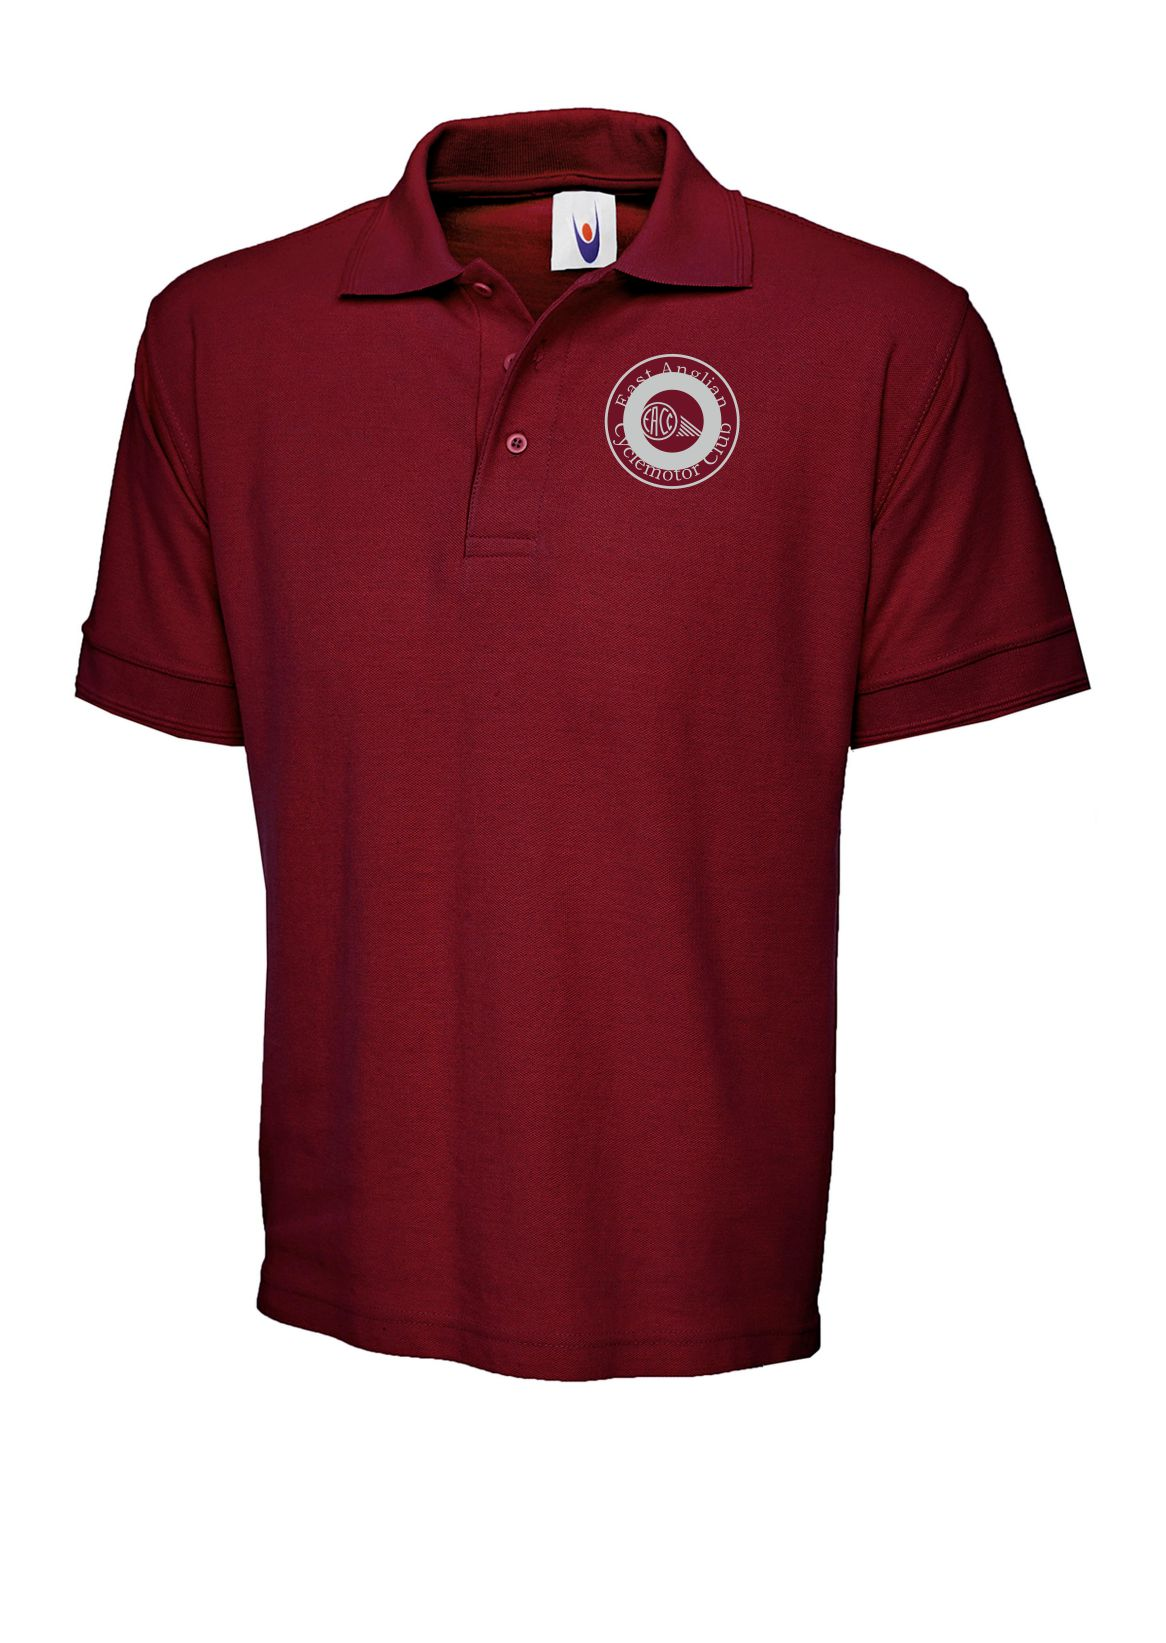 East Anglia Cyclemotor Club polo shirt